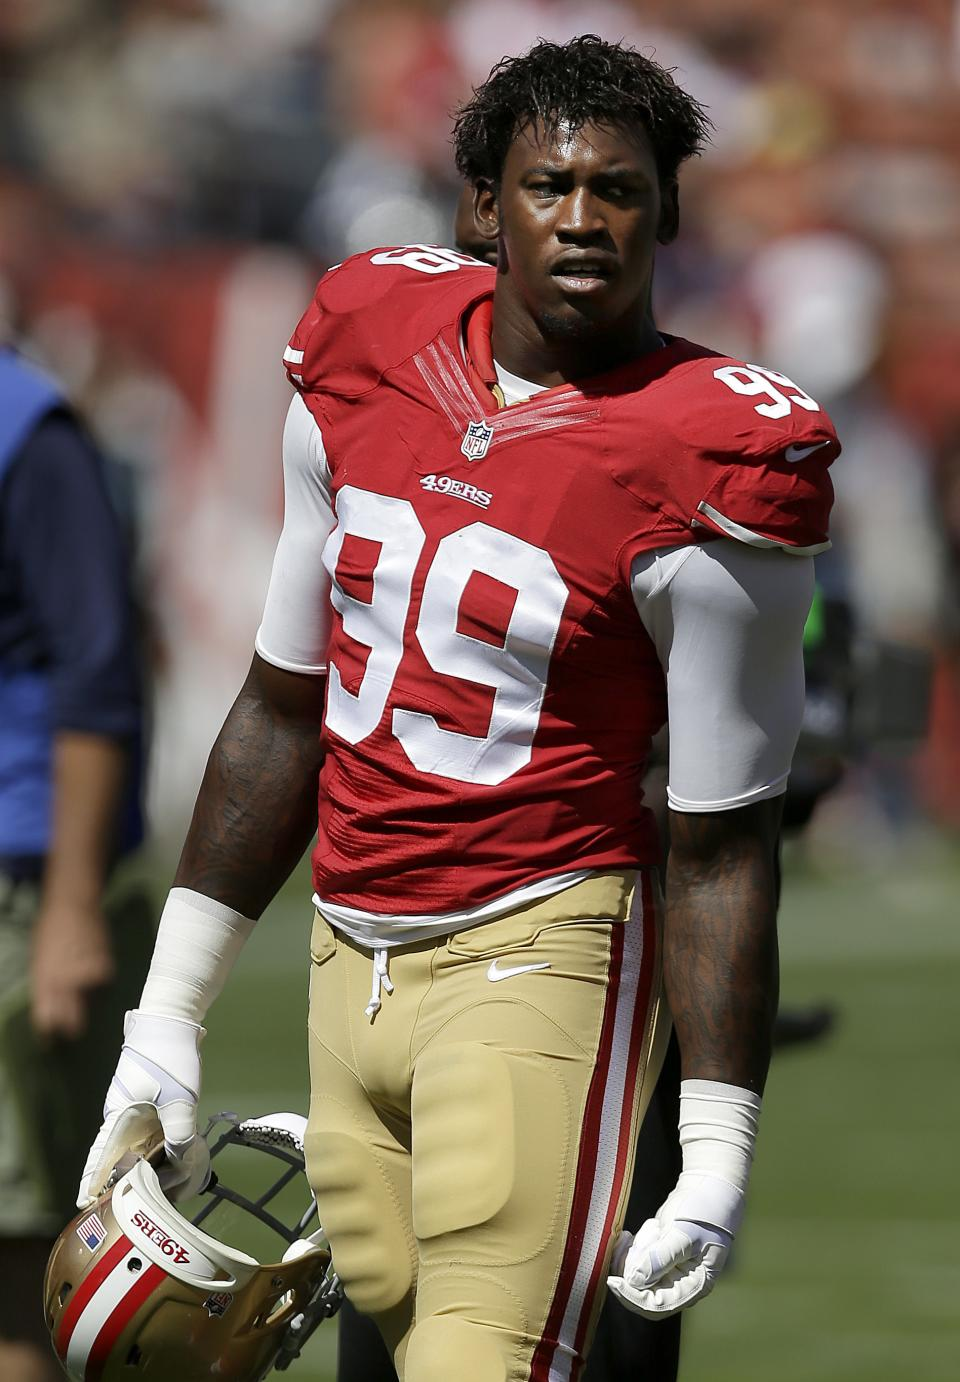 49ers move forward without linebacker Aldon Smith